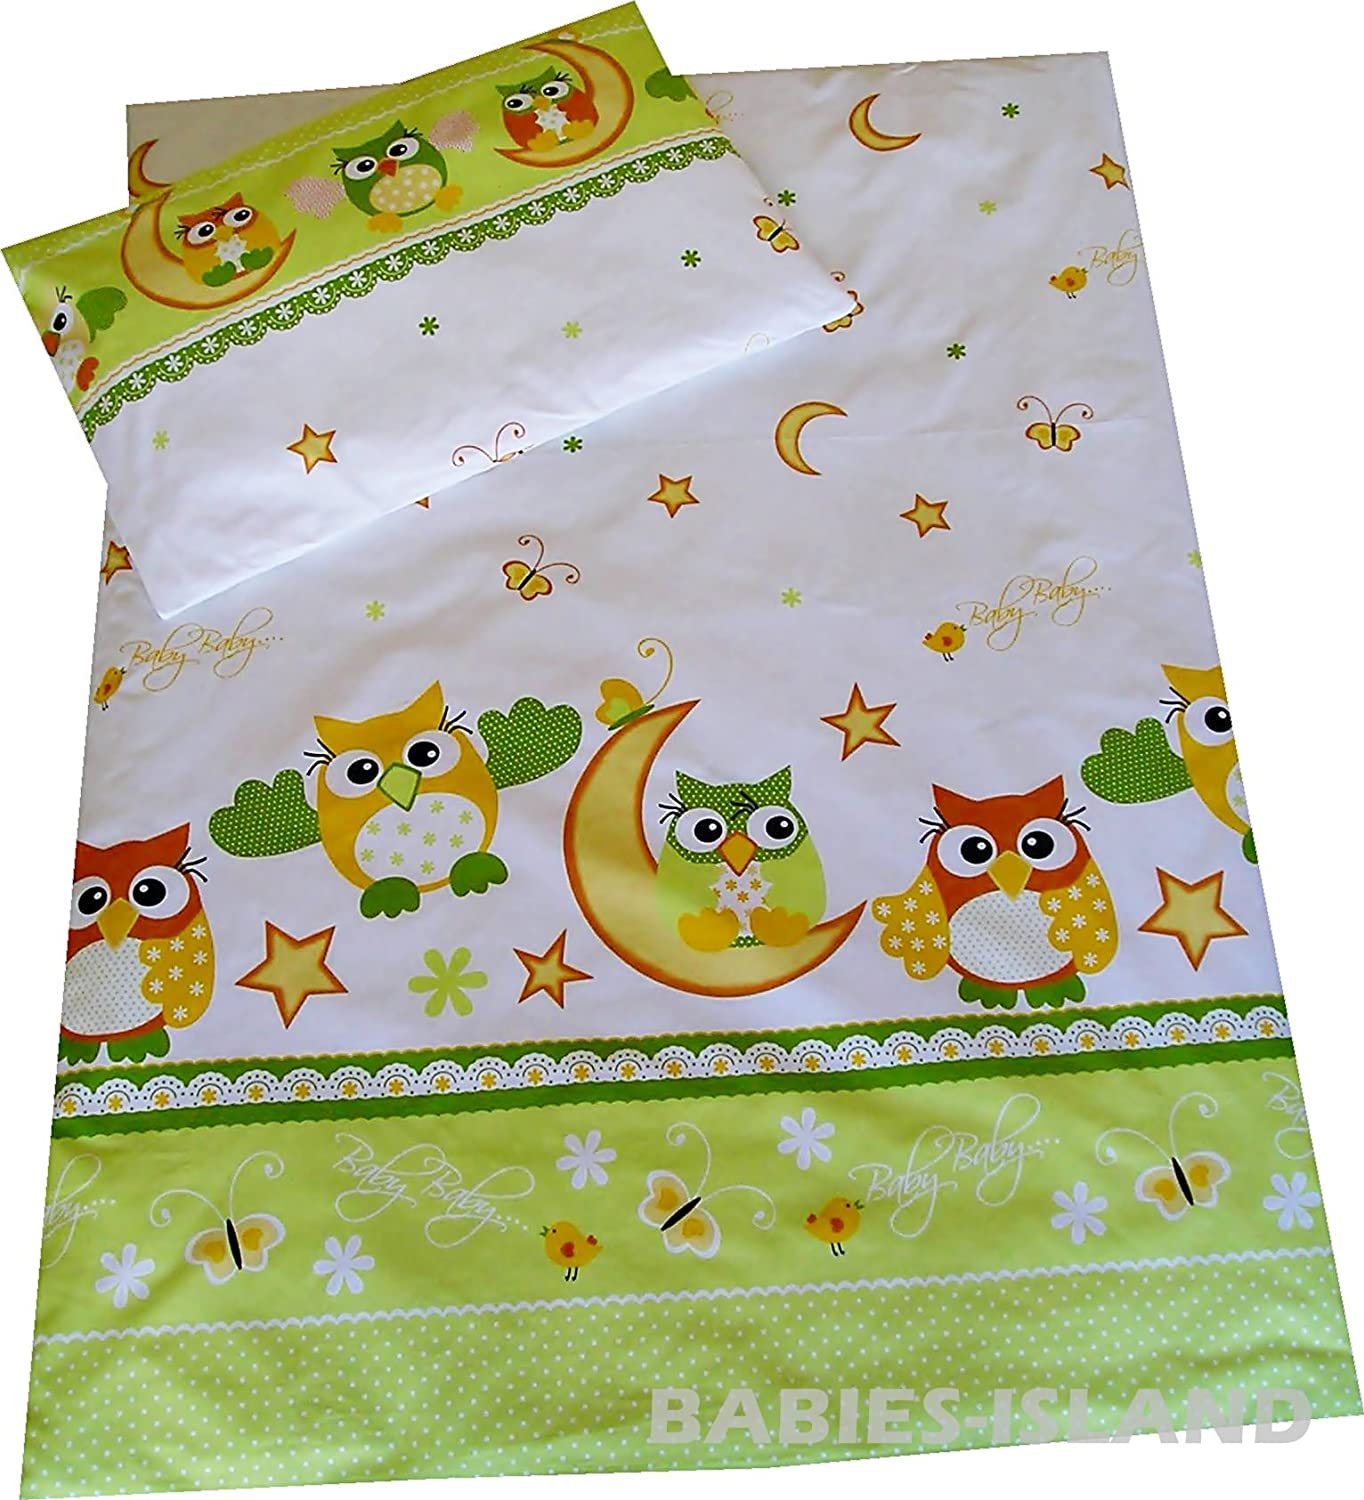 babies-island Children's Bedding- Girls Boys Duvet Cover and Pillowcase Cot/Cot bed/Toddler - GREEN OWLS (90x120 cm)